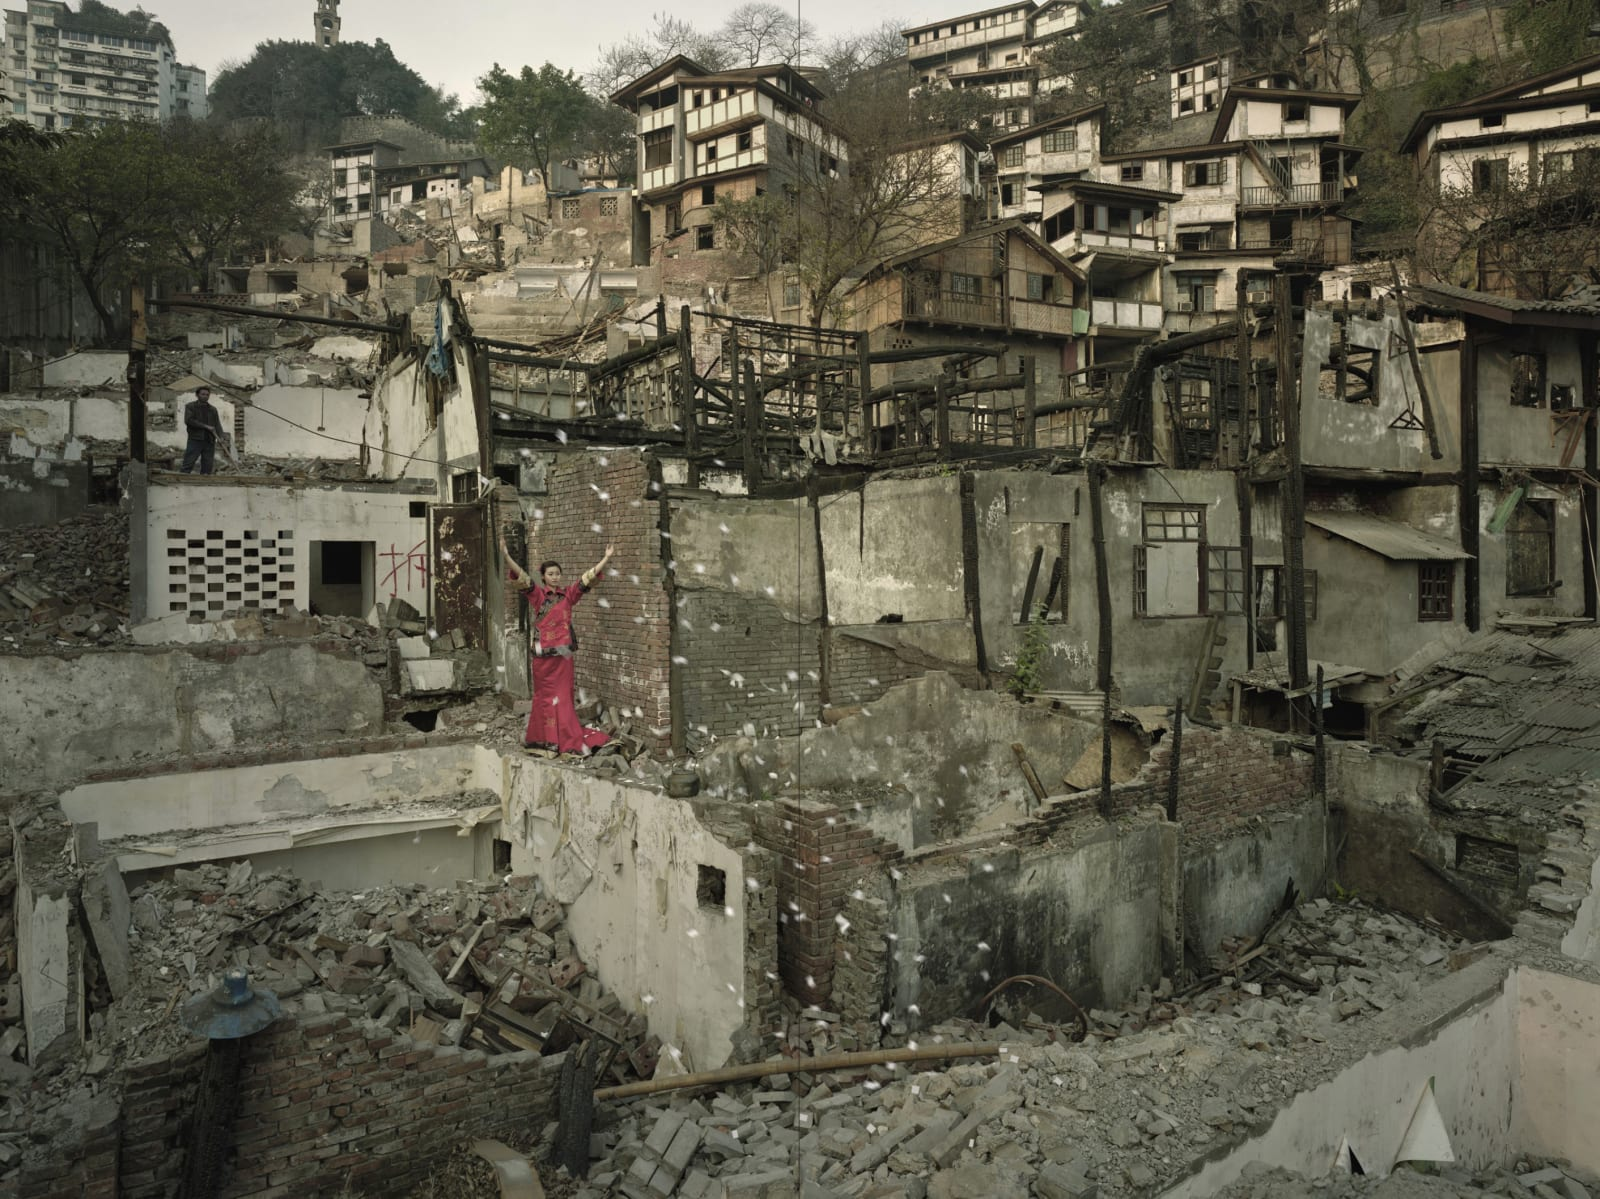 Qin Wen 秦文, Old City - Feng Po 故城系列之鳳坡, 2009